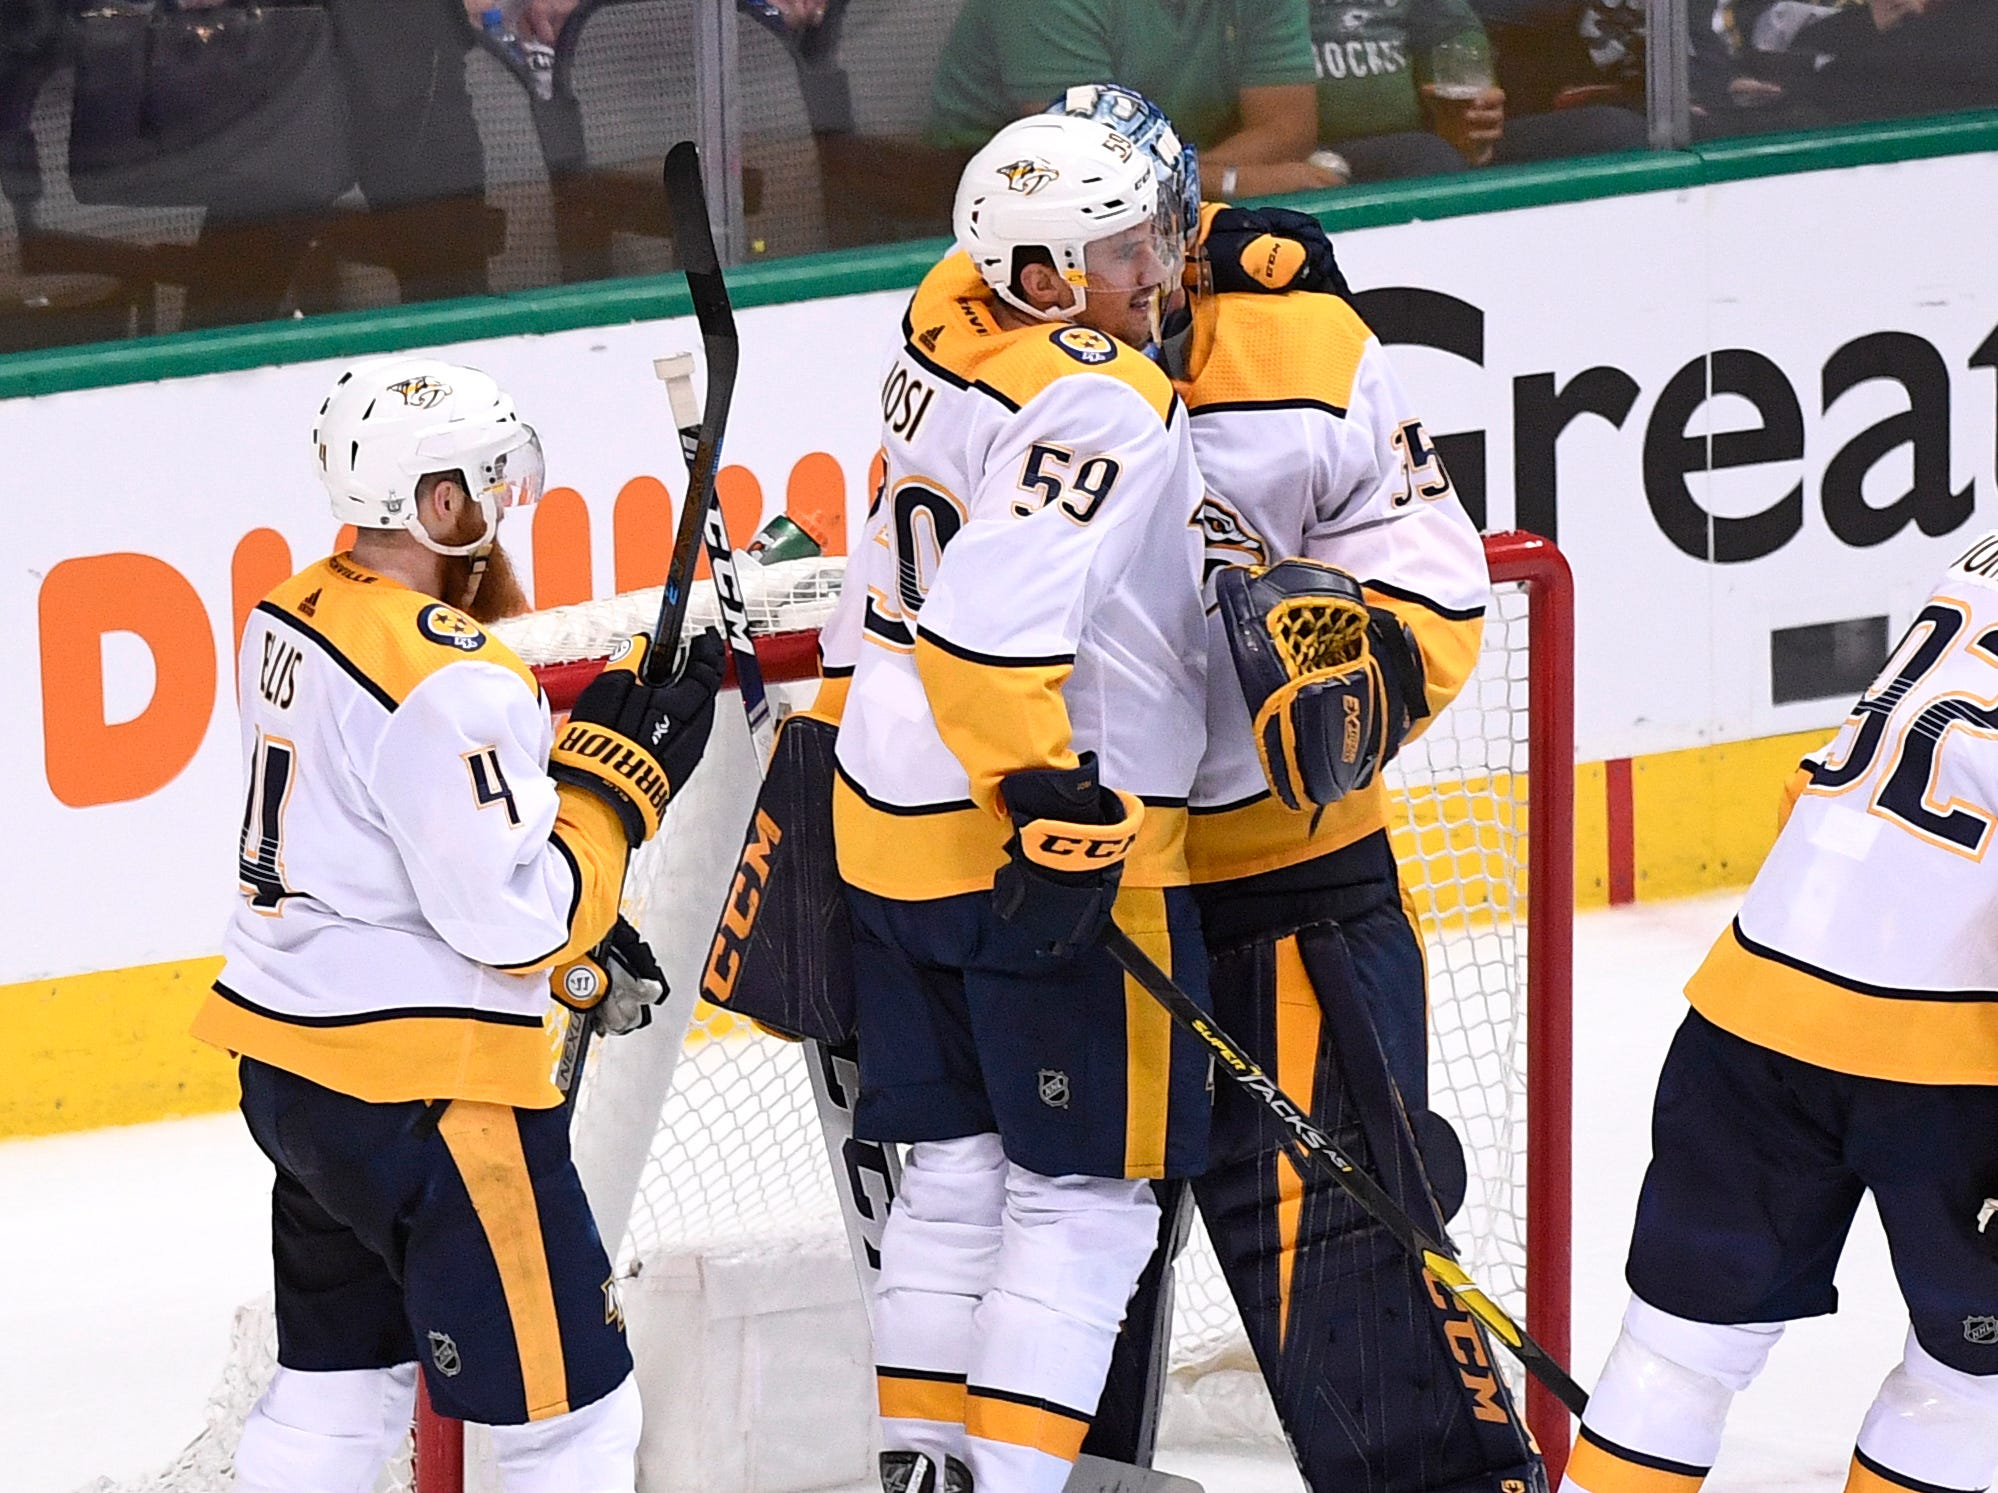 Nashville Predators defenseman Roman Josi (59) celebrates the win over the Dallas Stars with goaltender Pekka Rinne (35) in the divisional semifinal game at the American Airlines Center in Dallas, Texas., Monday, April 15, 2019.